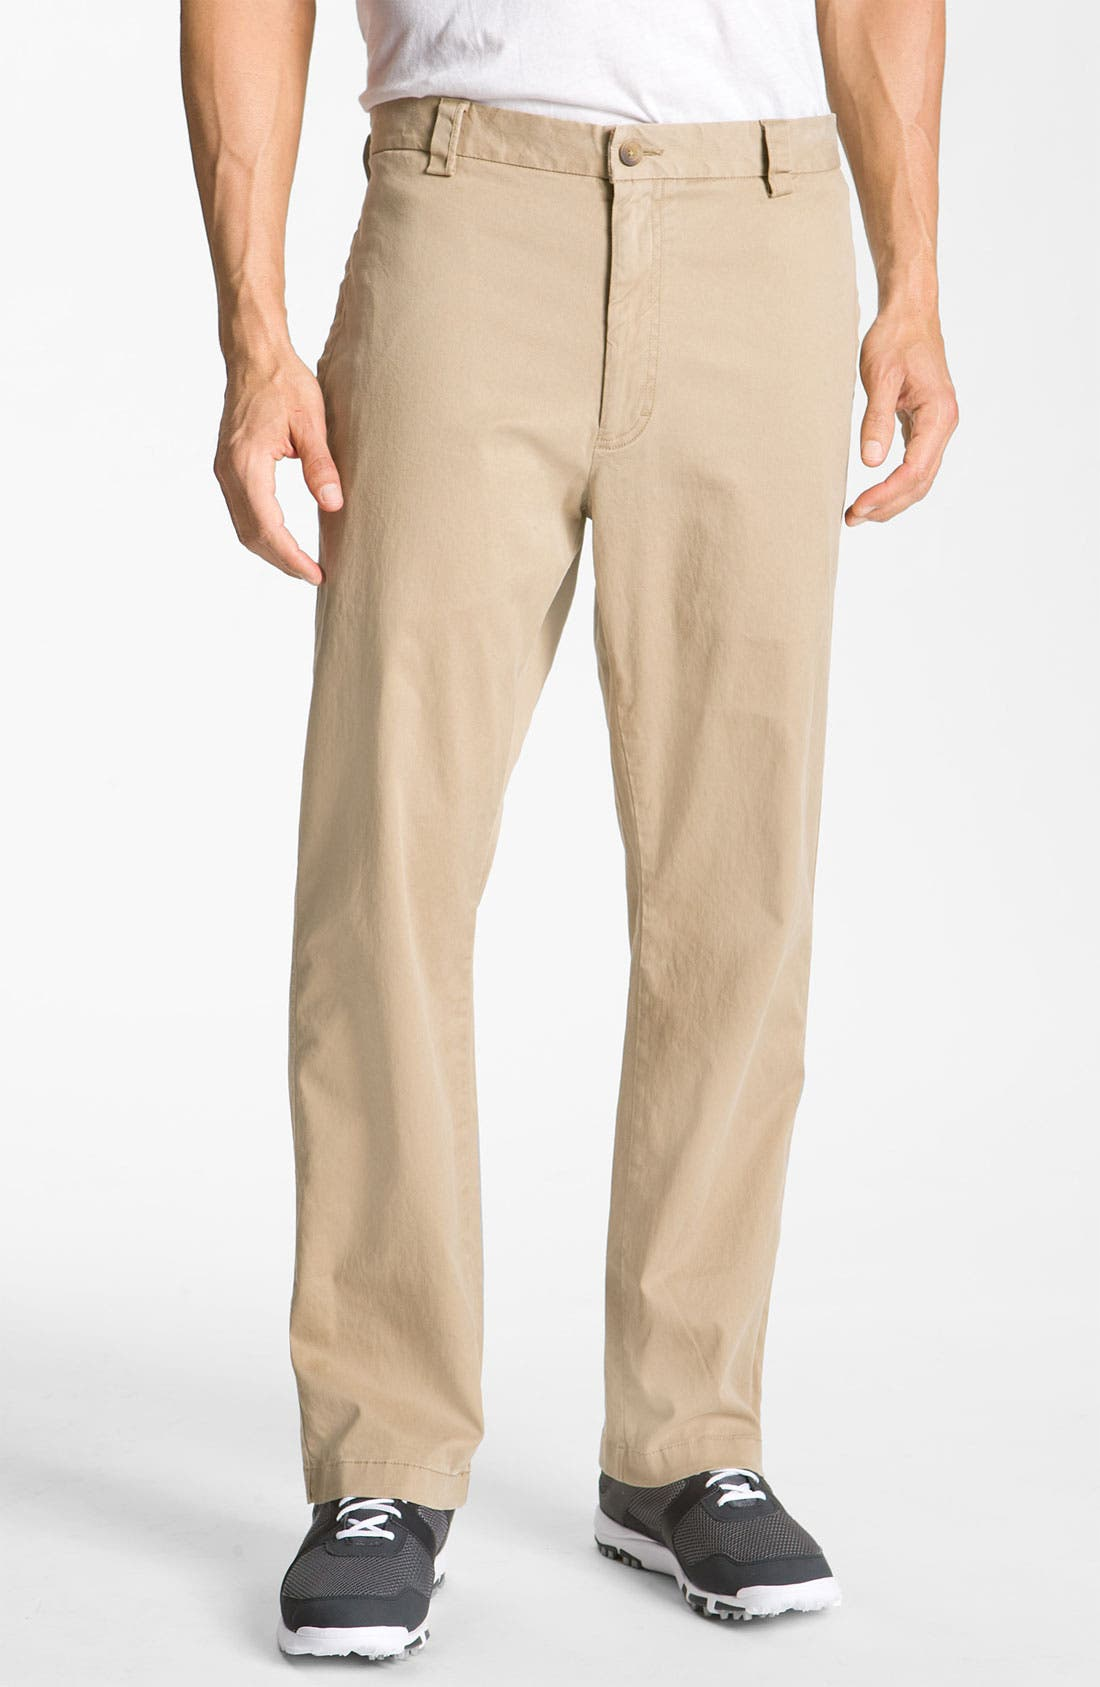 Main Image - Cutter & Buck 'Fremont' Chinos (Big & Tall)